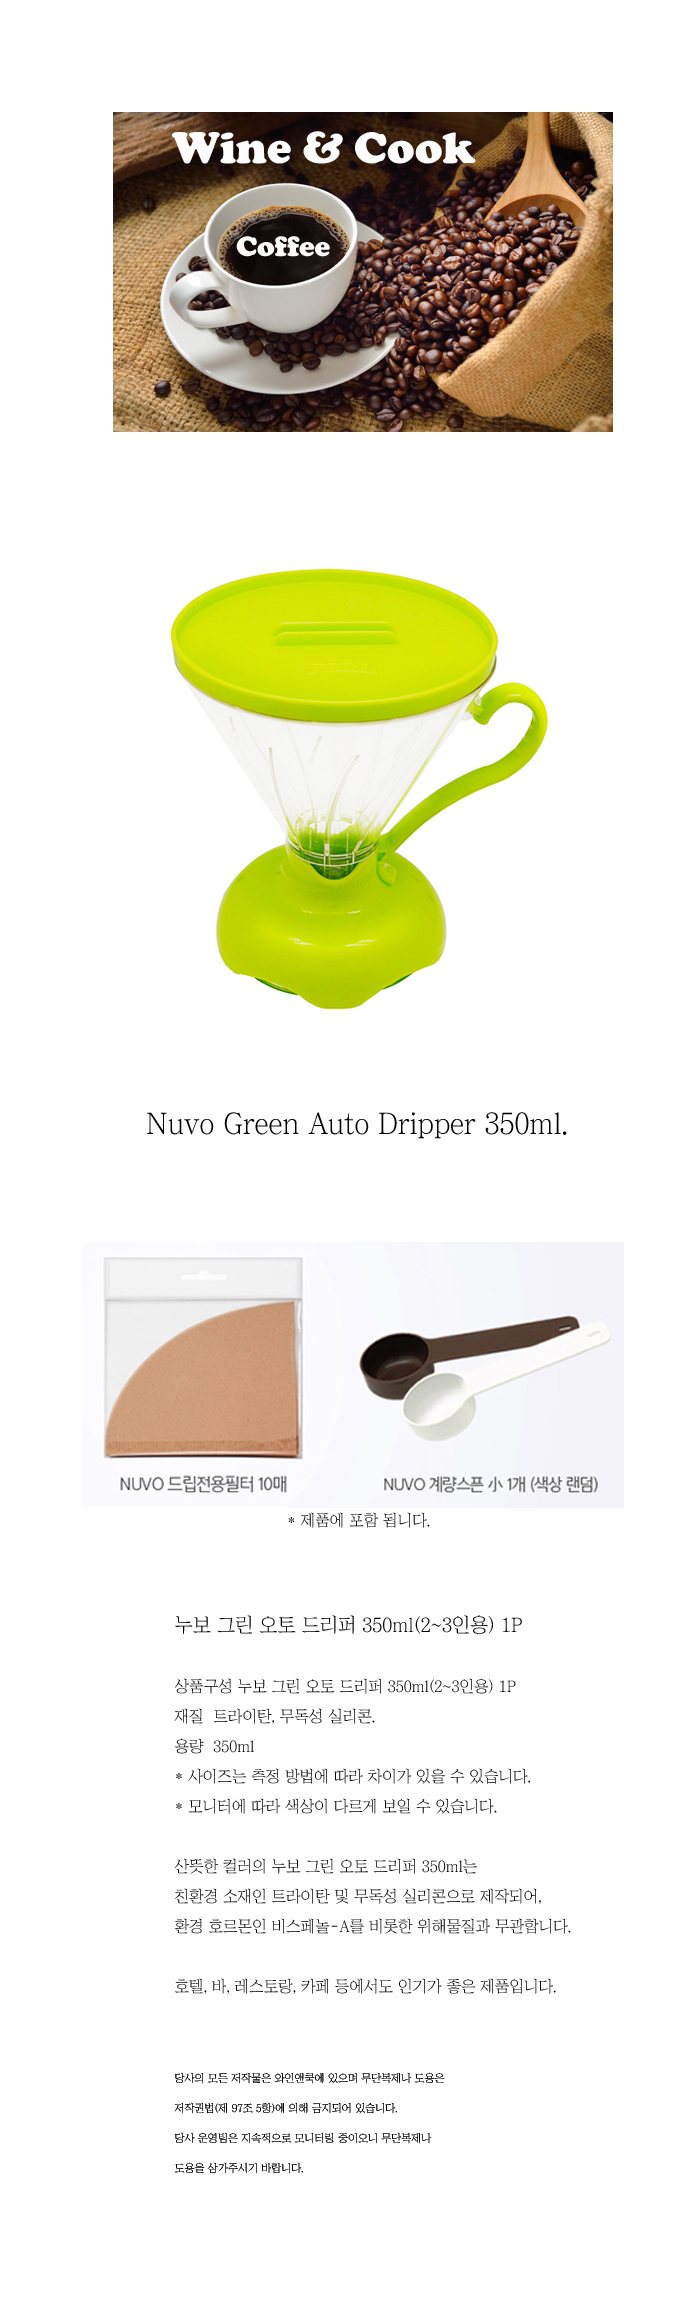 [ WINEQOK ] Nubo Green Auto Dripper 350ml (For 2~3) 1P